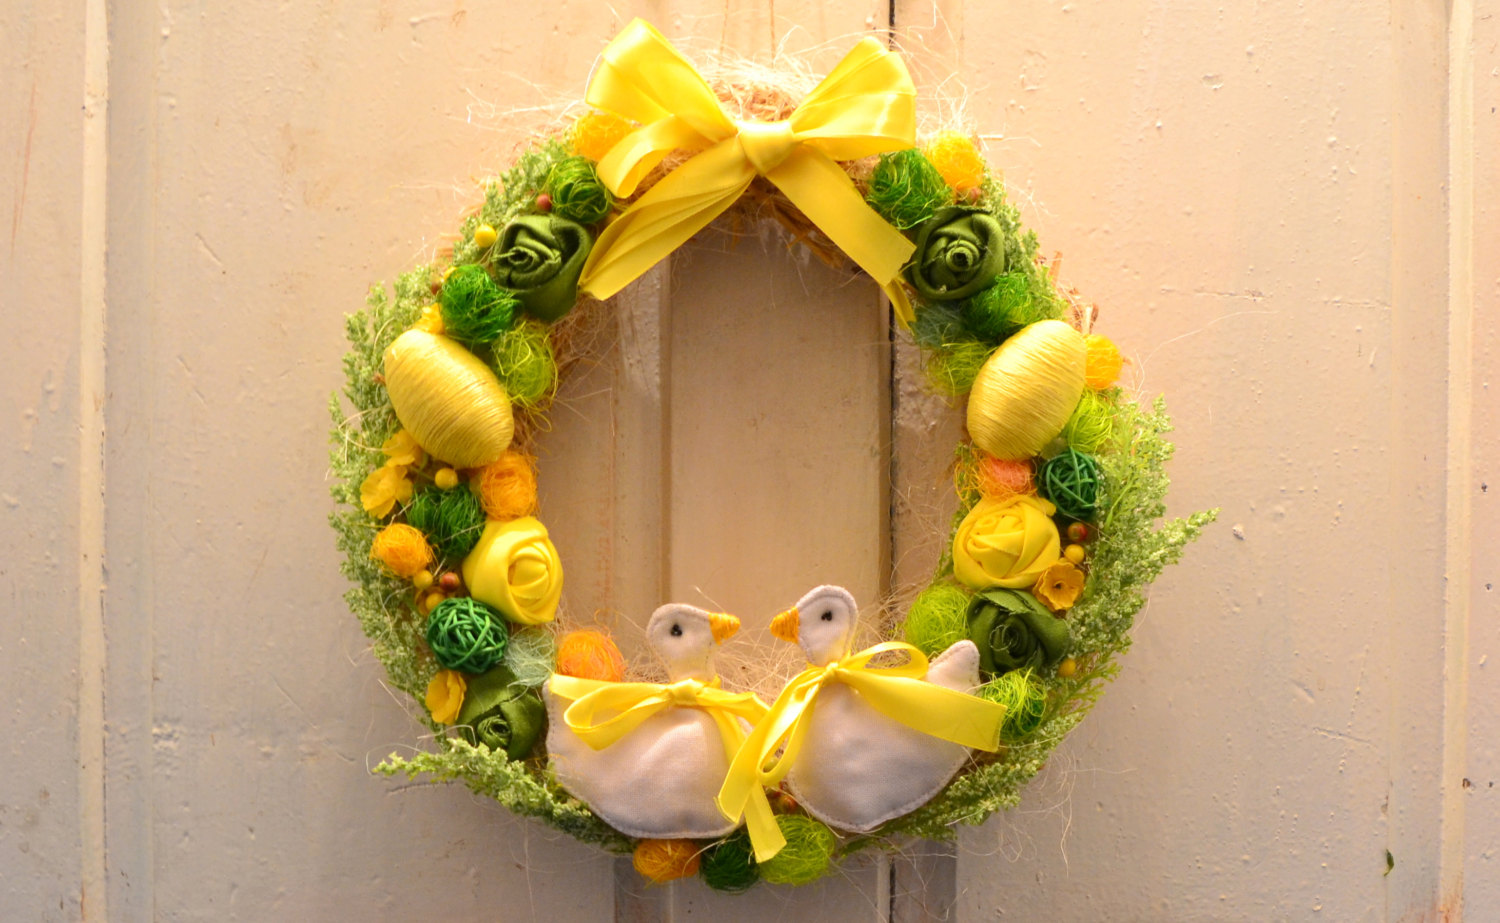 18 Cheerful Handmade Easter Wreath Designs To Get Your Home In The ...